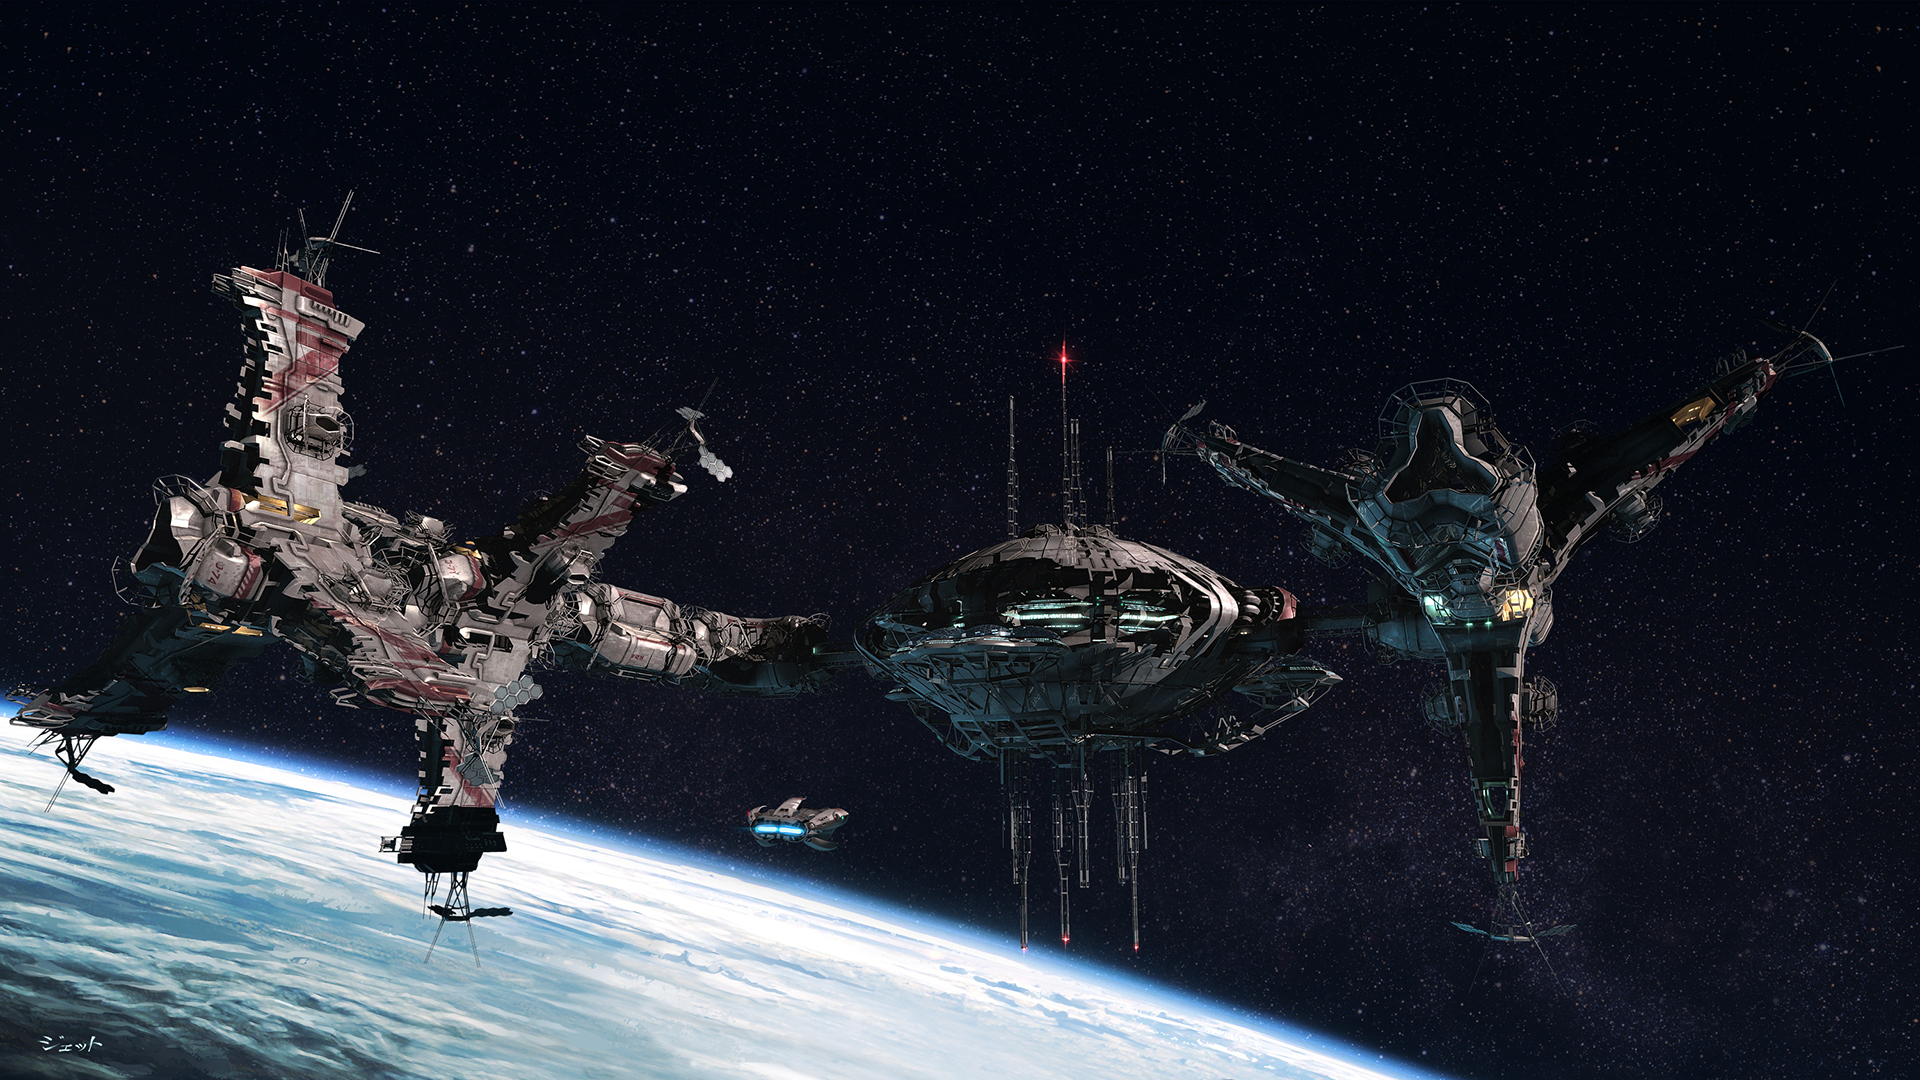 1920x1080 - Space Station Wallpapers 29